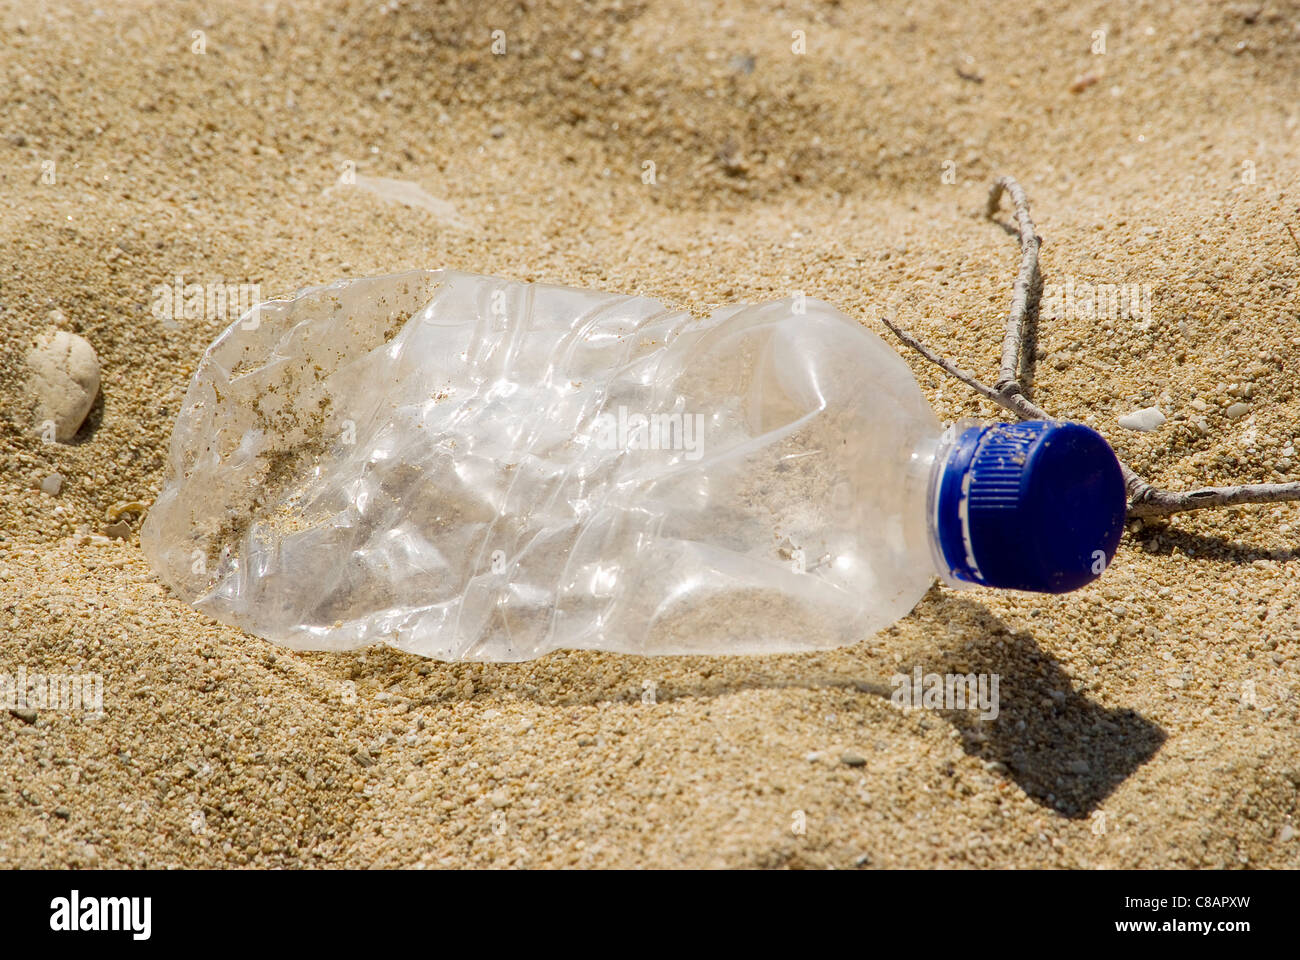 Empty plastic bottle in the sand - Stock Image